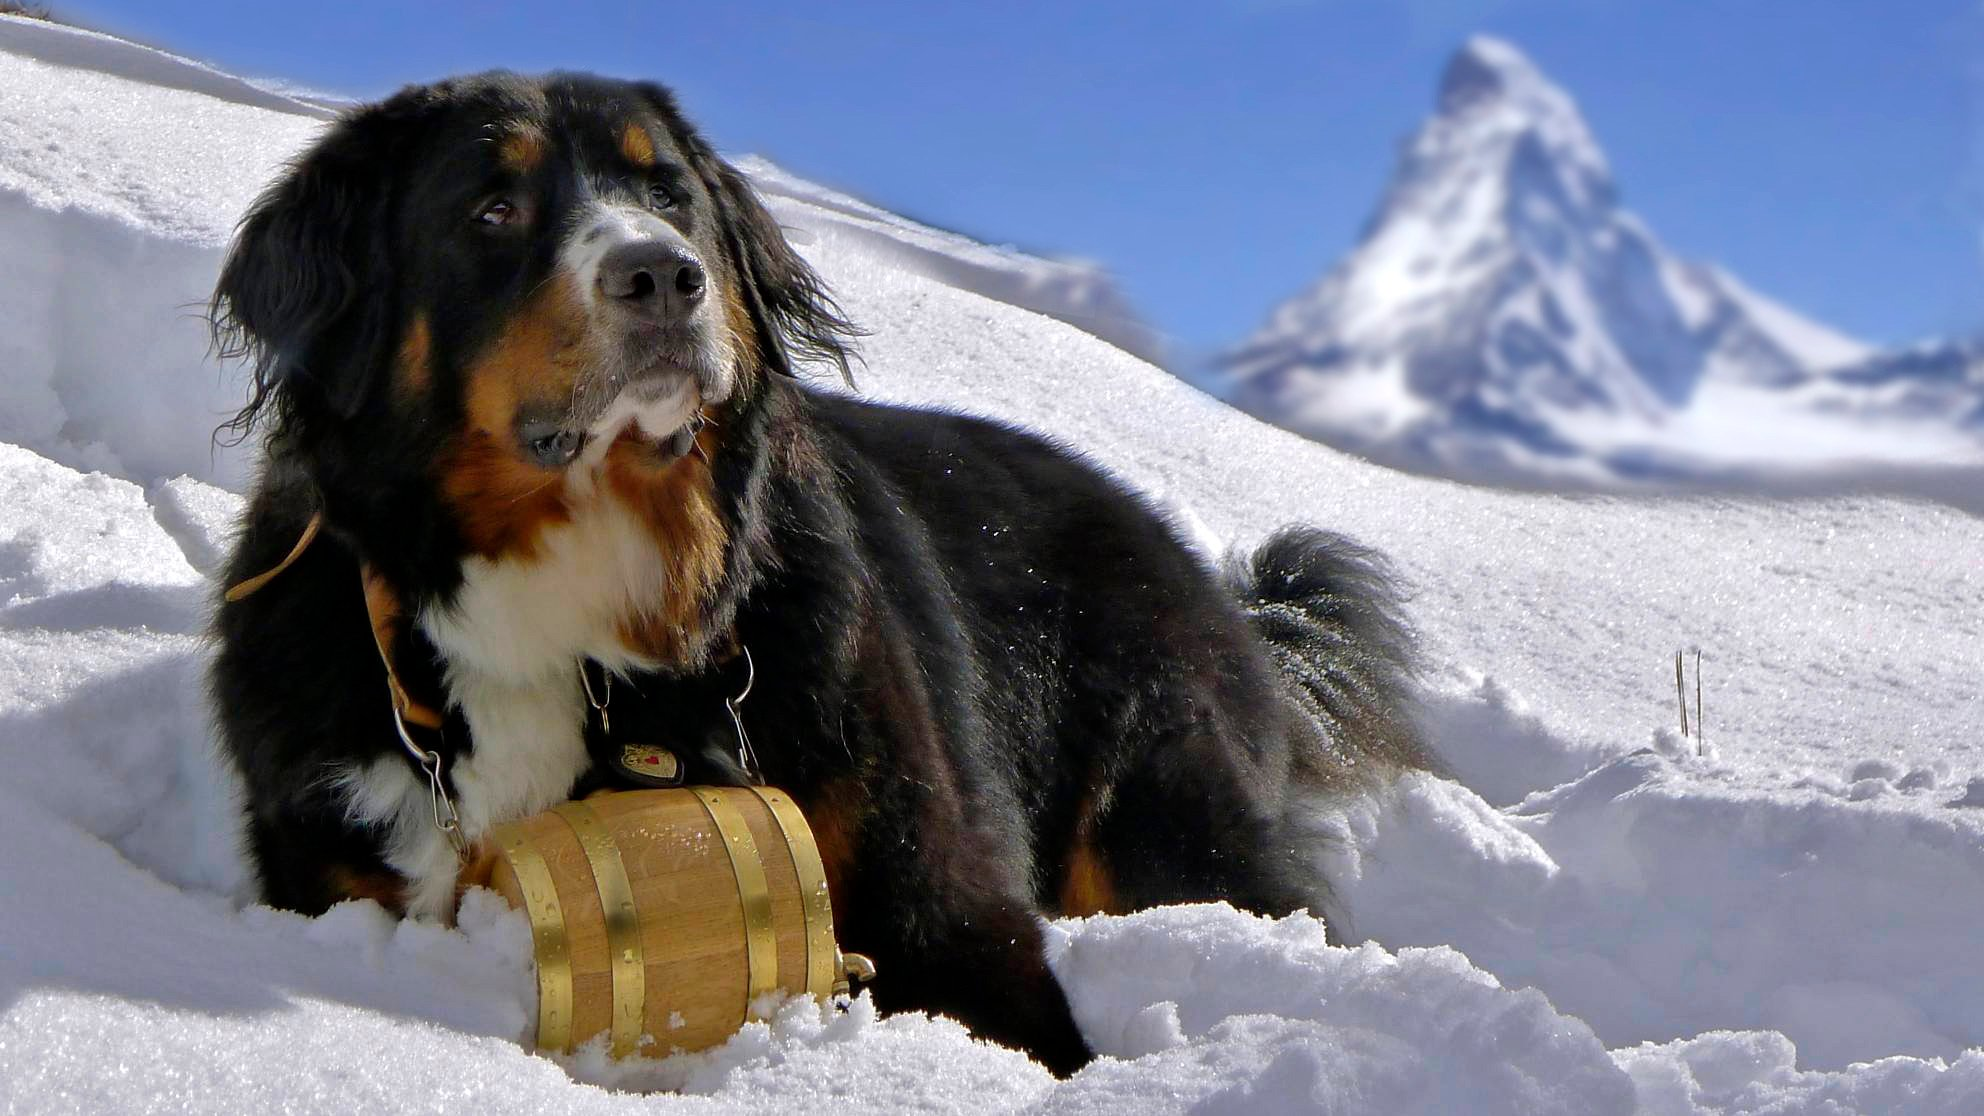 bernese mountain dog breed information and photos. Black Bedroom Furniture Sets. Home Design Ideas